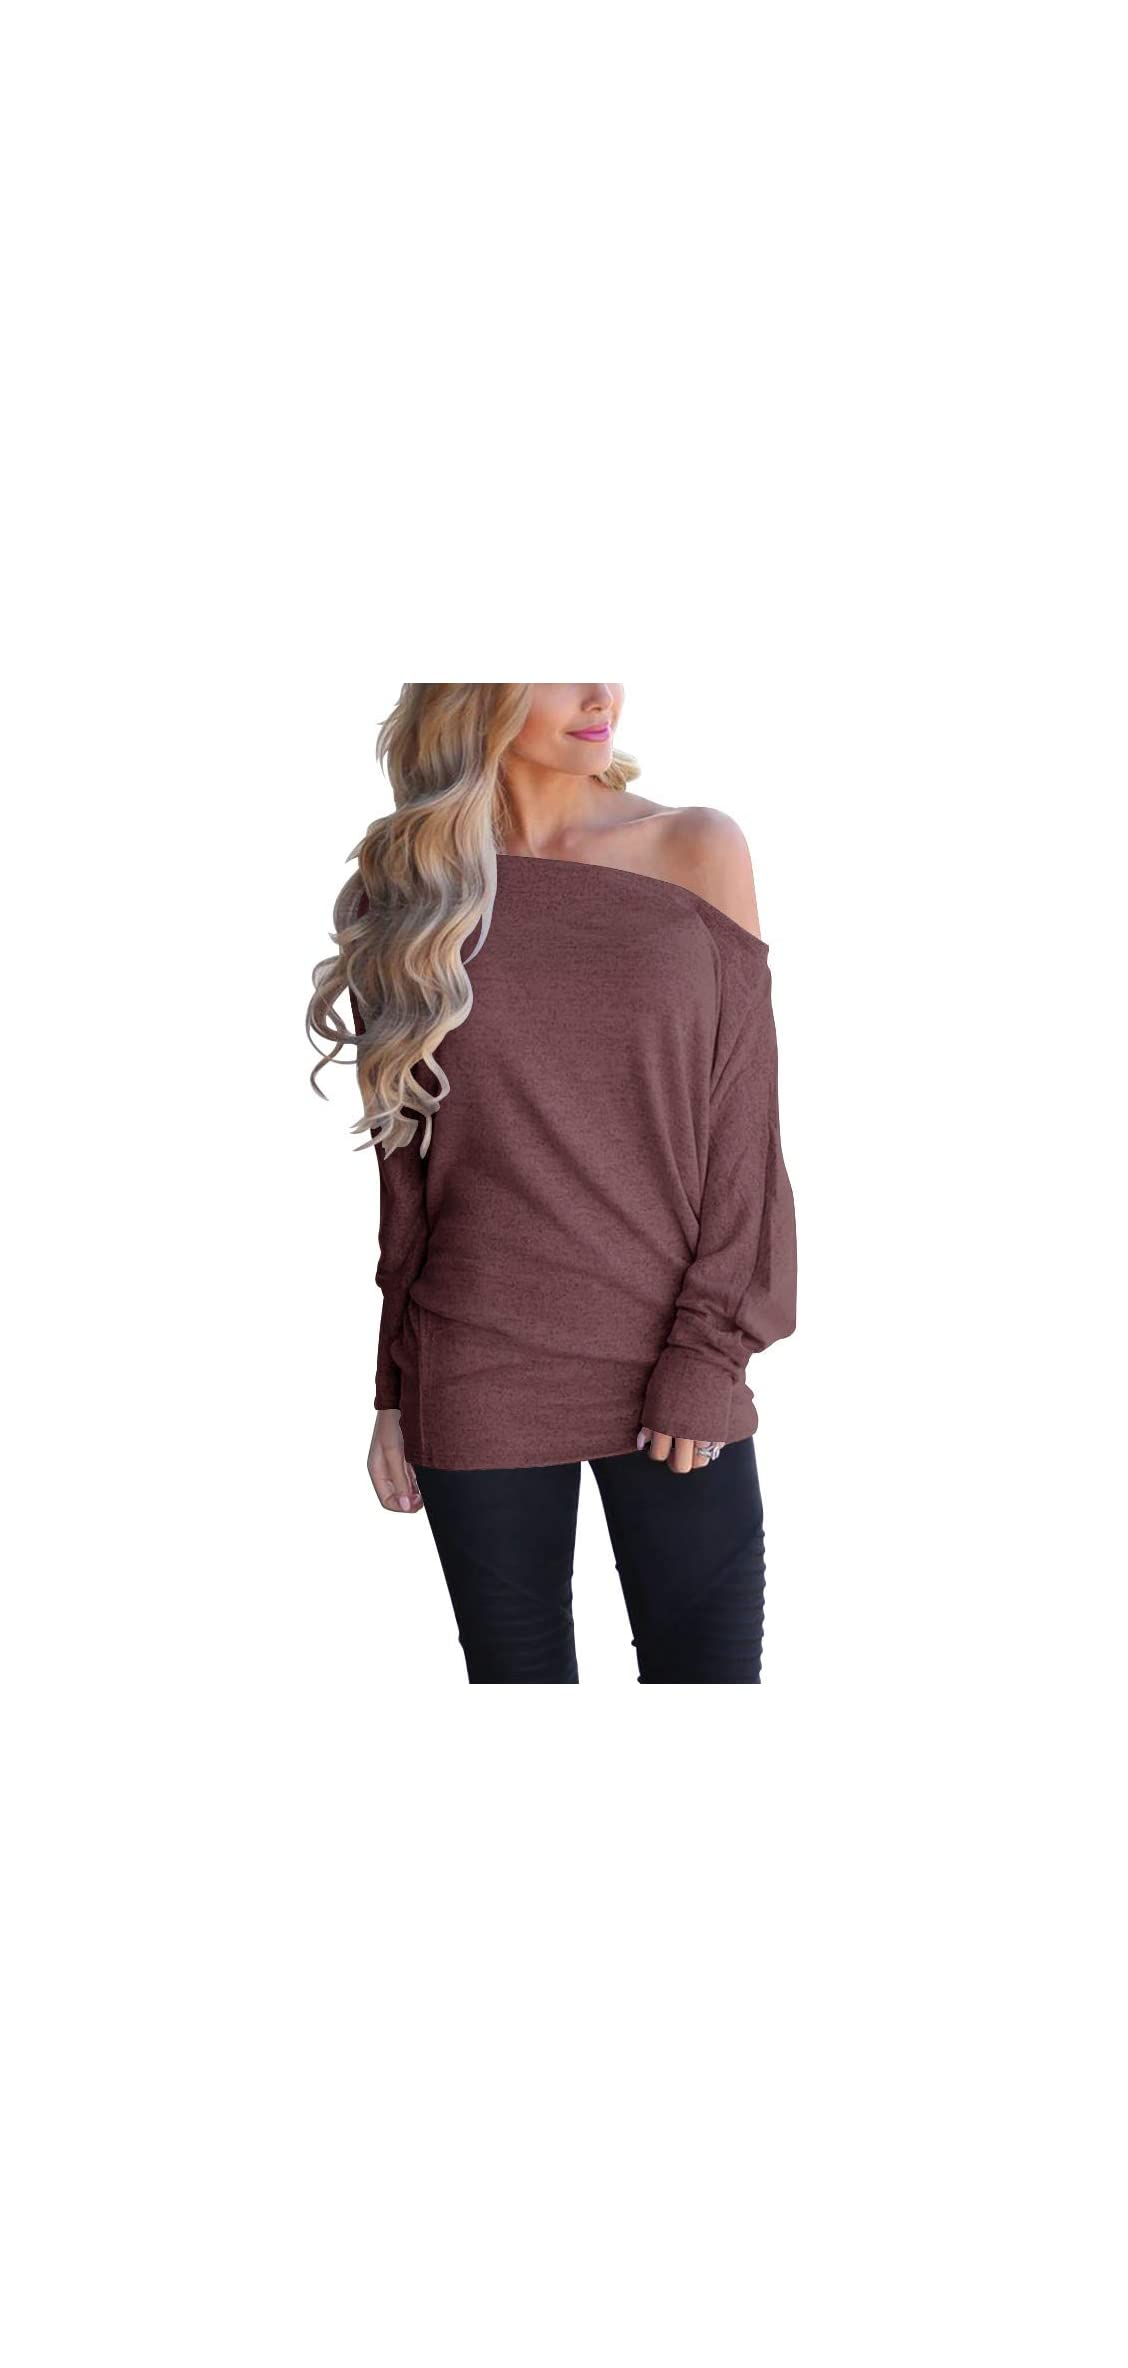 Women's Off Shoulder Loose Pullover Sweater Batwing Knit